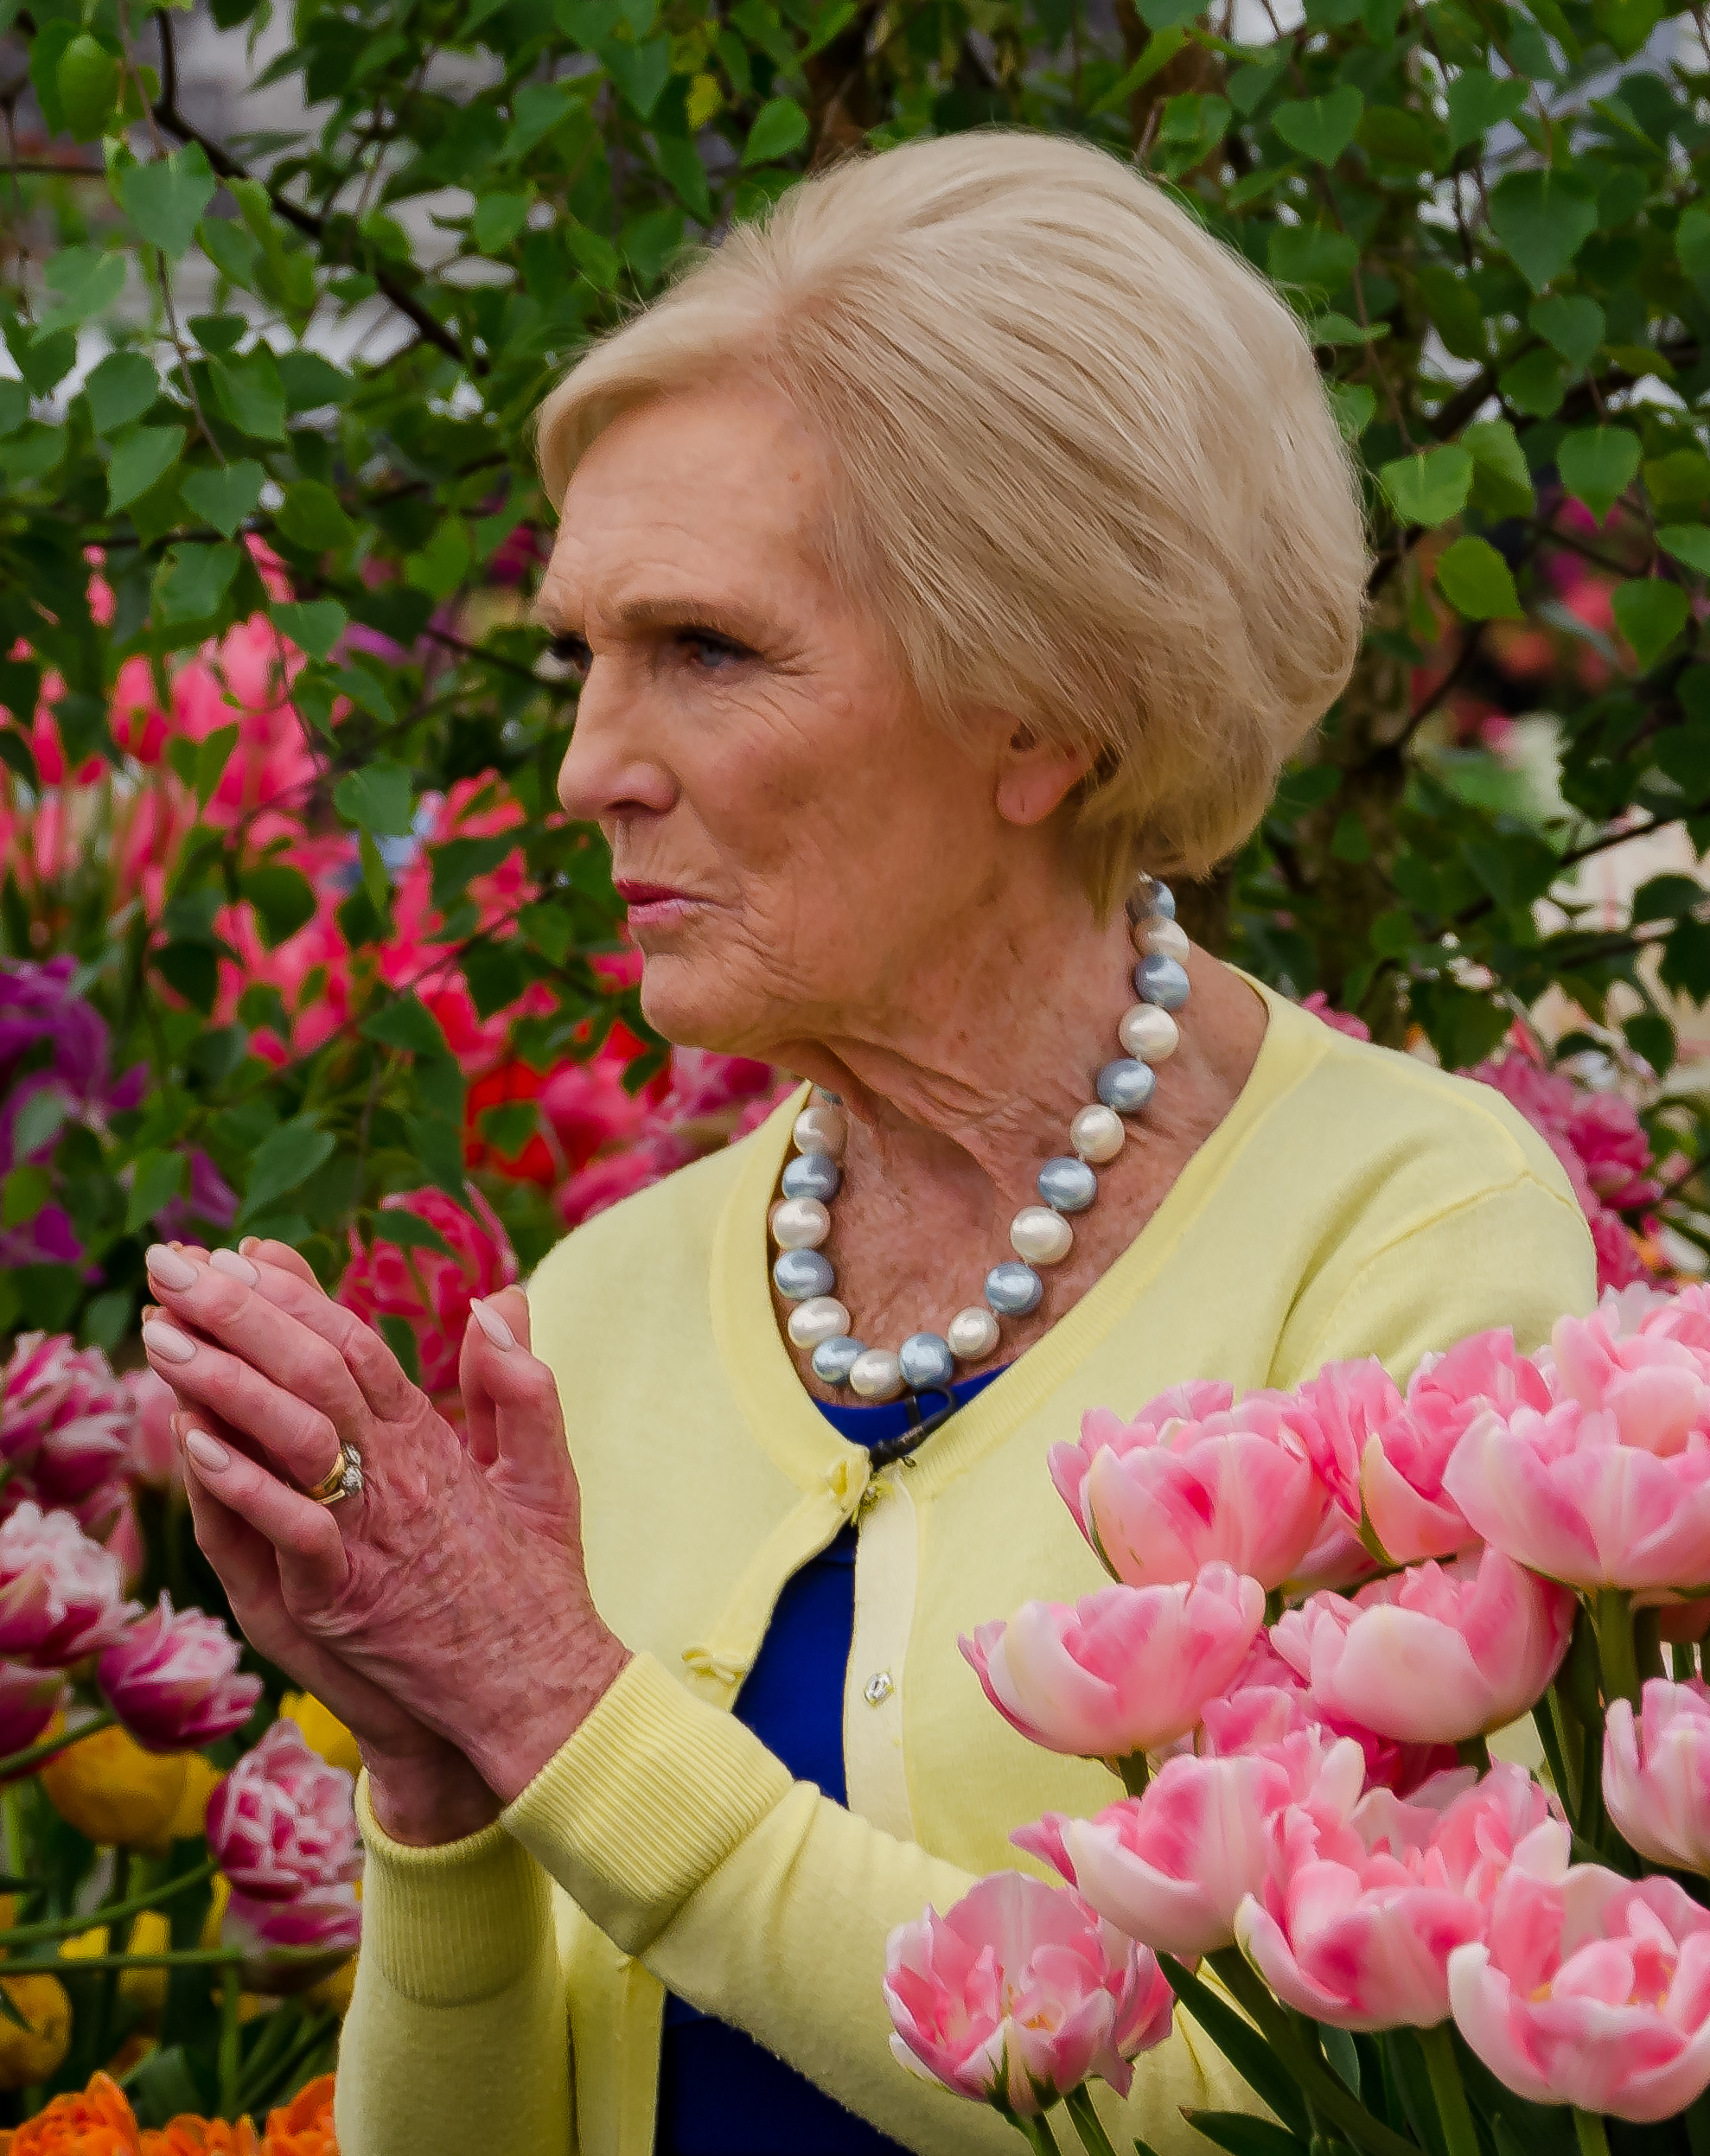 Mary Berry image